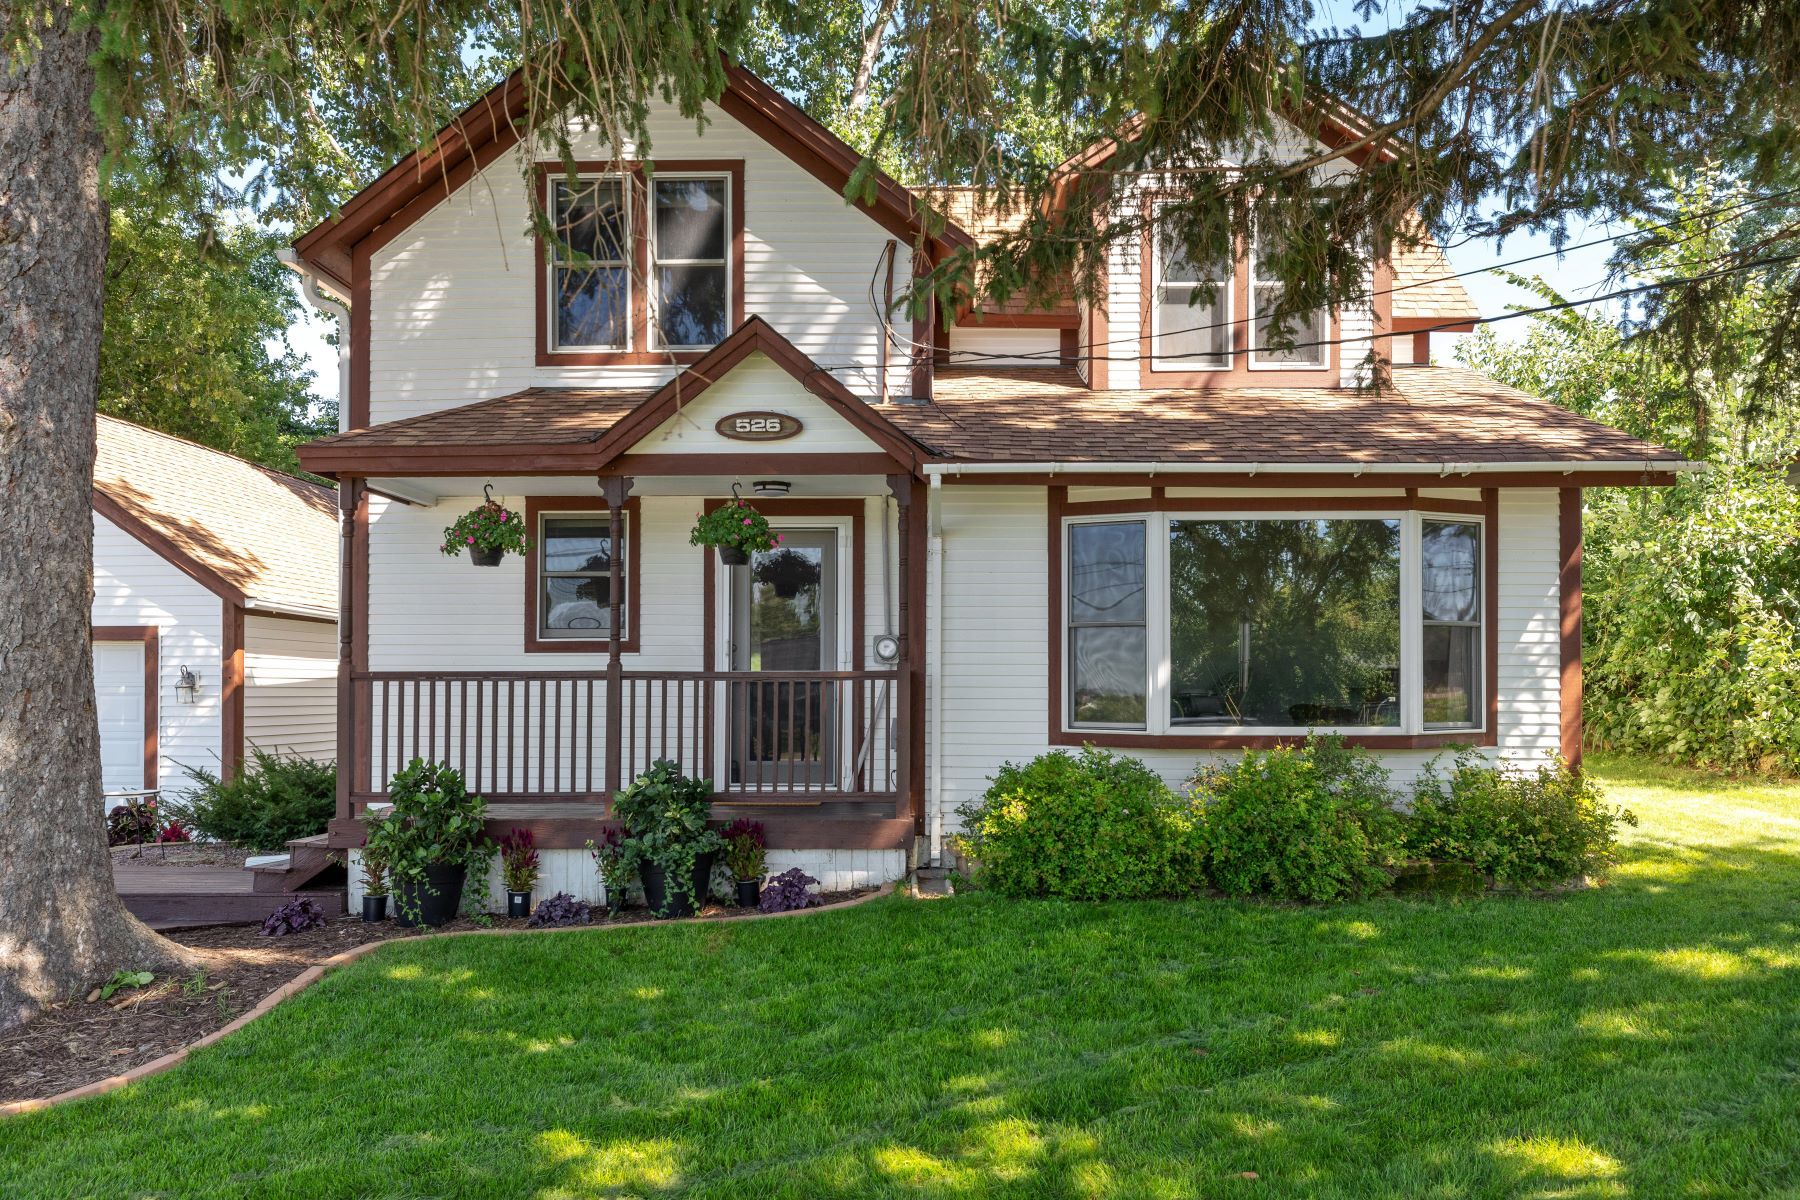 Single Family Homes for Sale at 526 Main Street N St. Michael, Minnesota 55376 United States